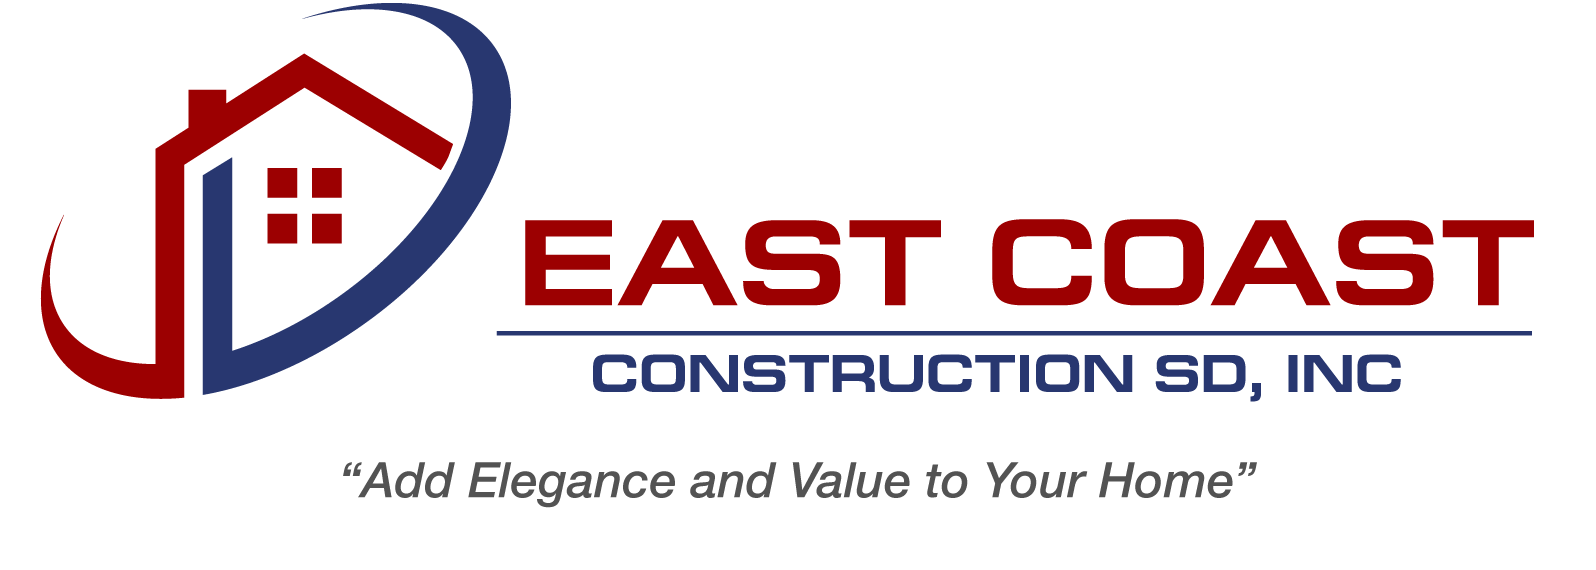 East Coast Construction SD, Inc. Logo